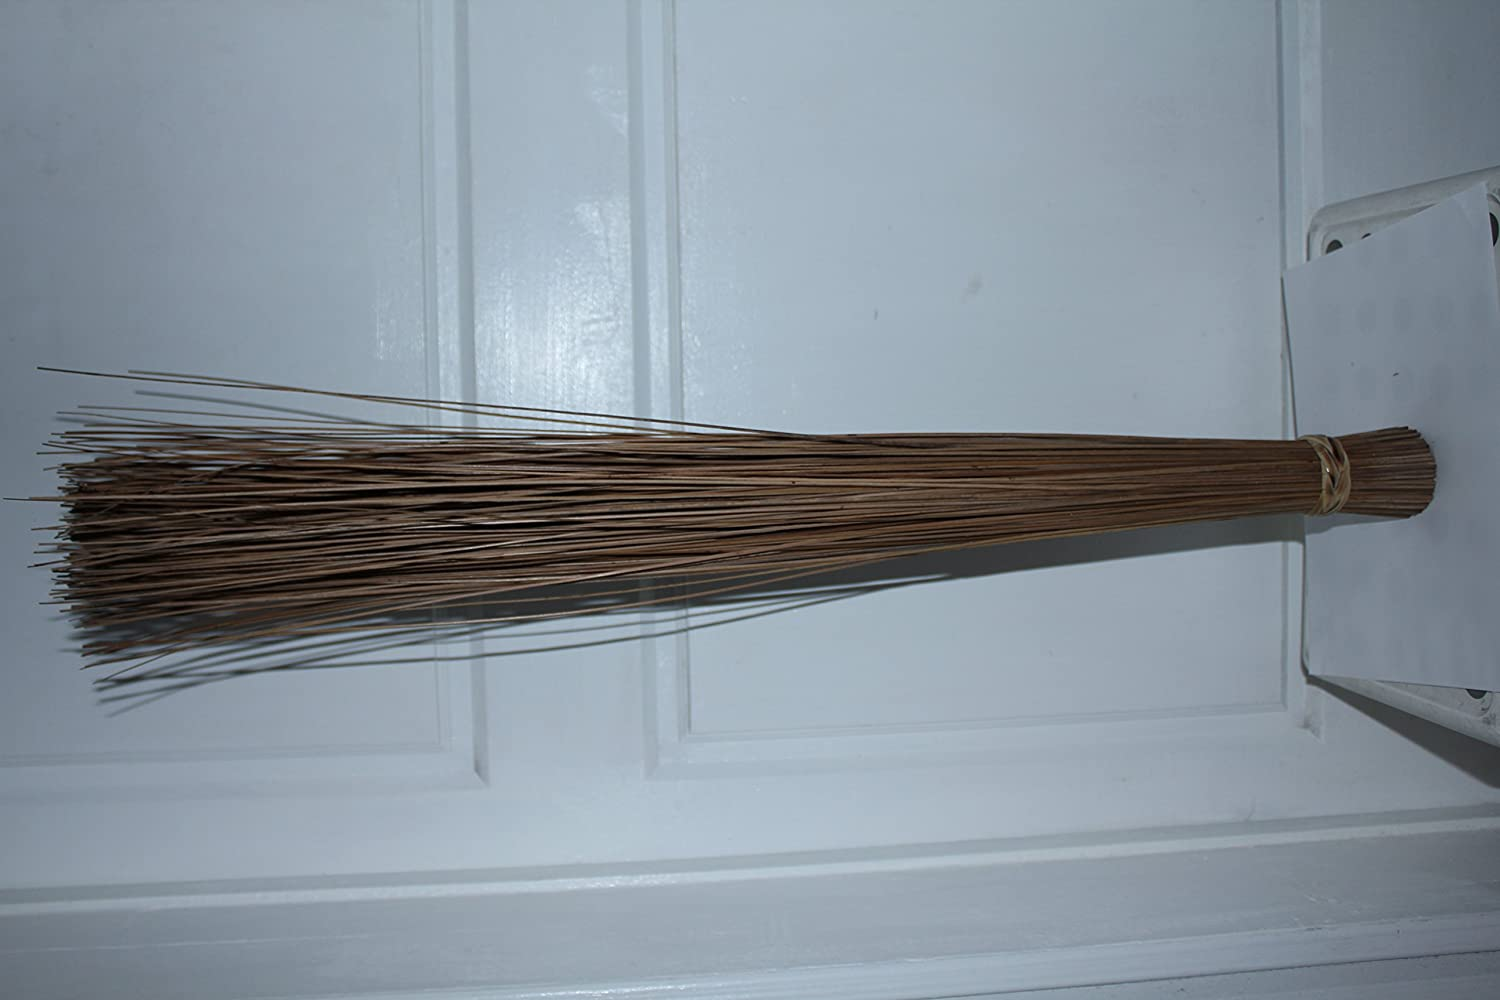 Amazon.com: STICK BROOM OR WALIS TING TING 30 INCHES LONG: Home ...